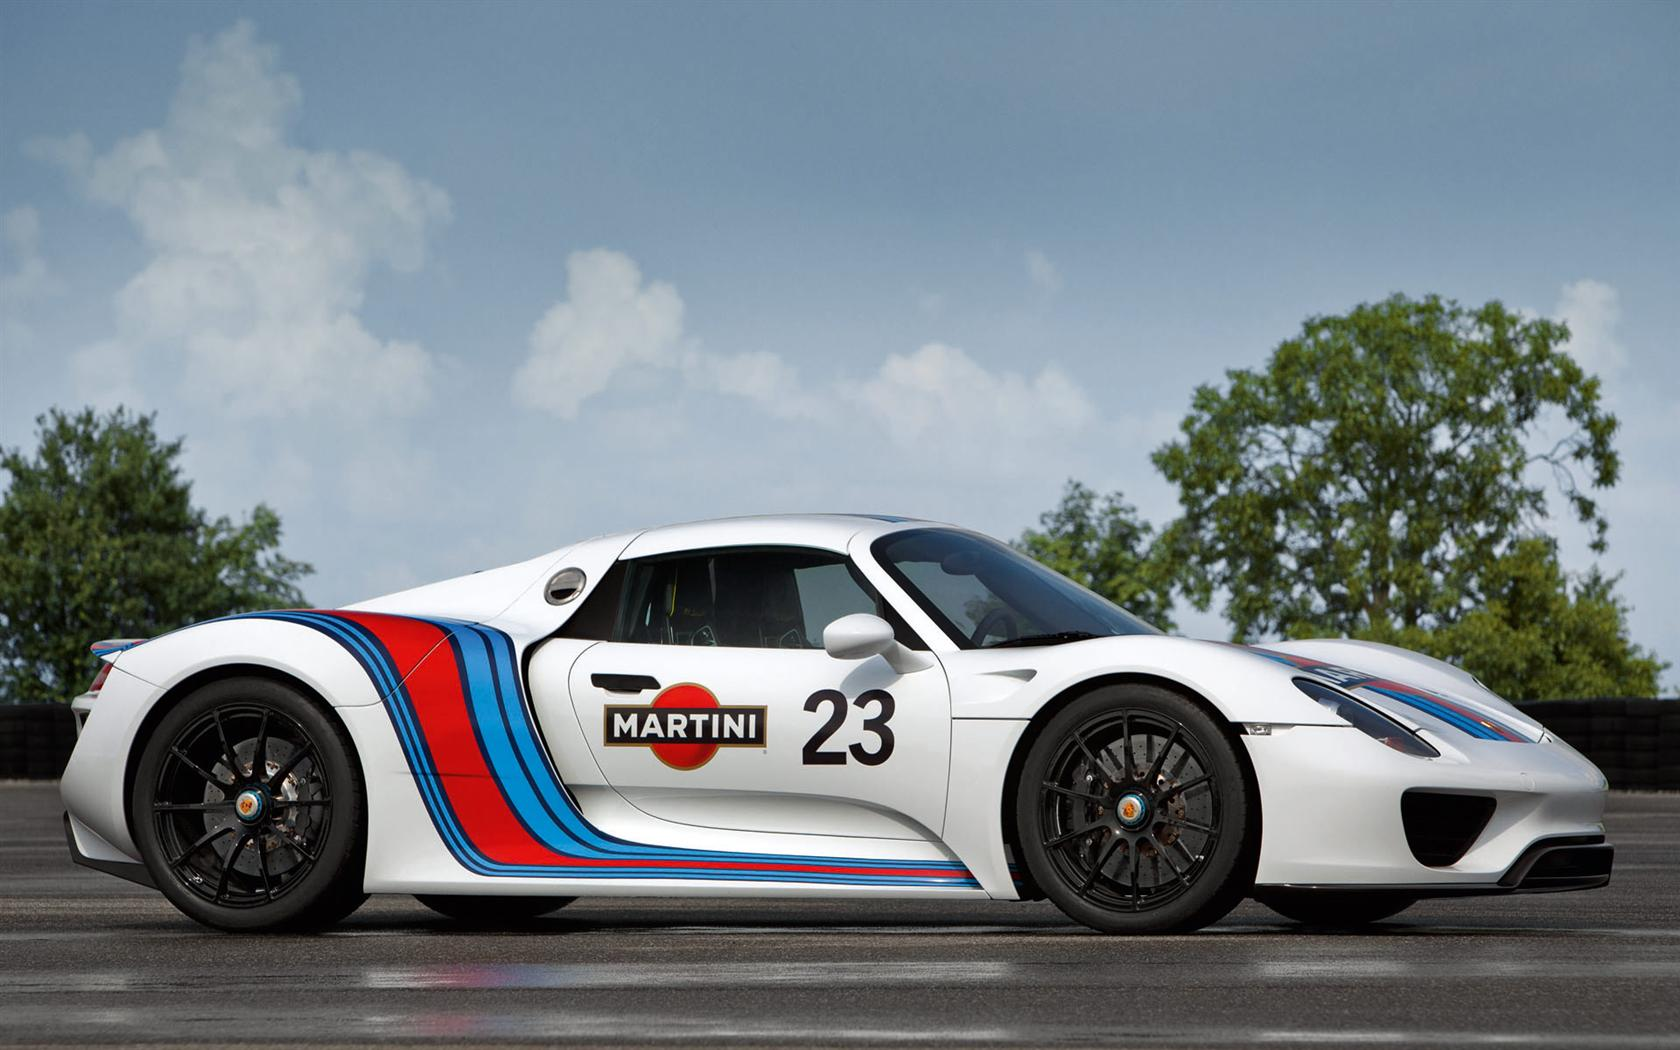 2013 porsche 918 spyder martini livery images photo porsche 918 martini racing 2013 8. Black Bedroom Furniture Sets. Home Design Ideas